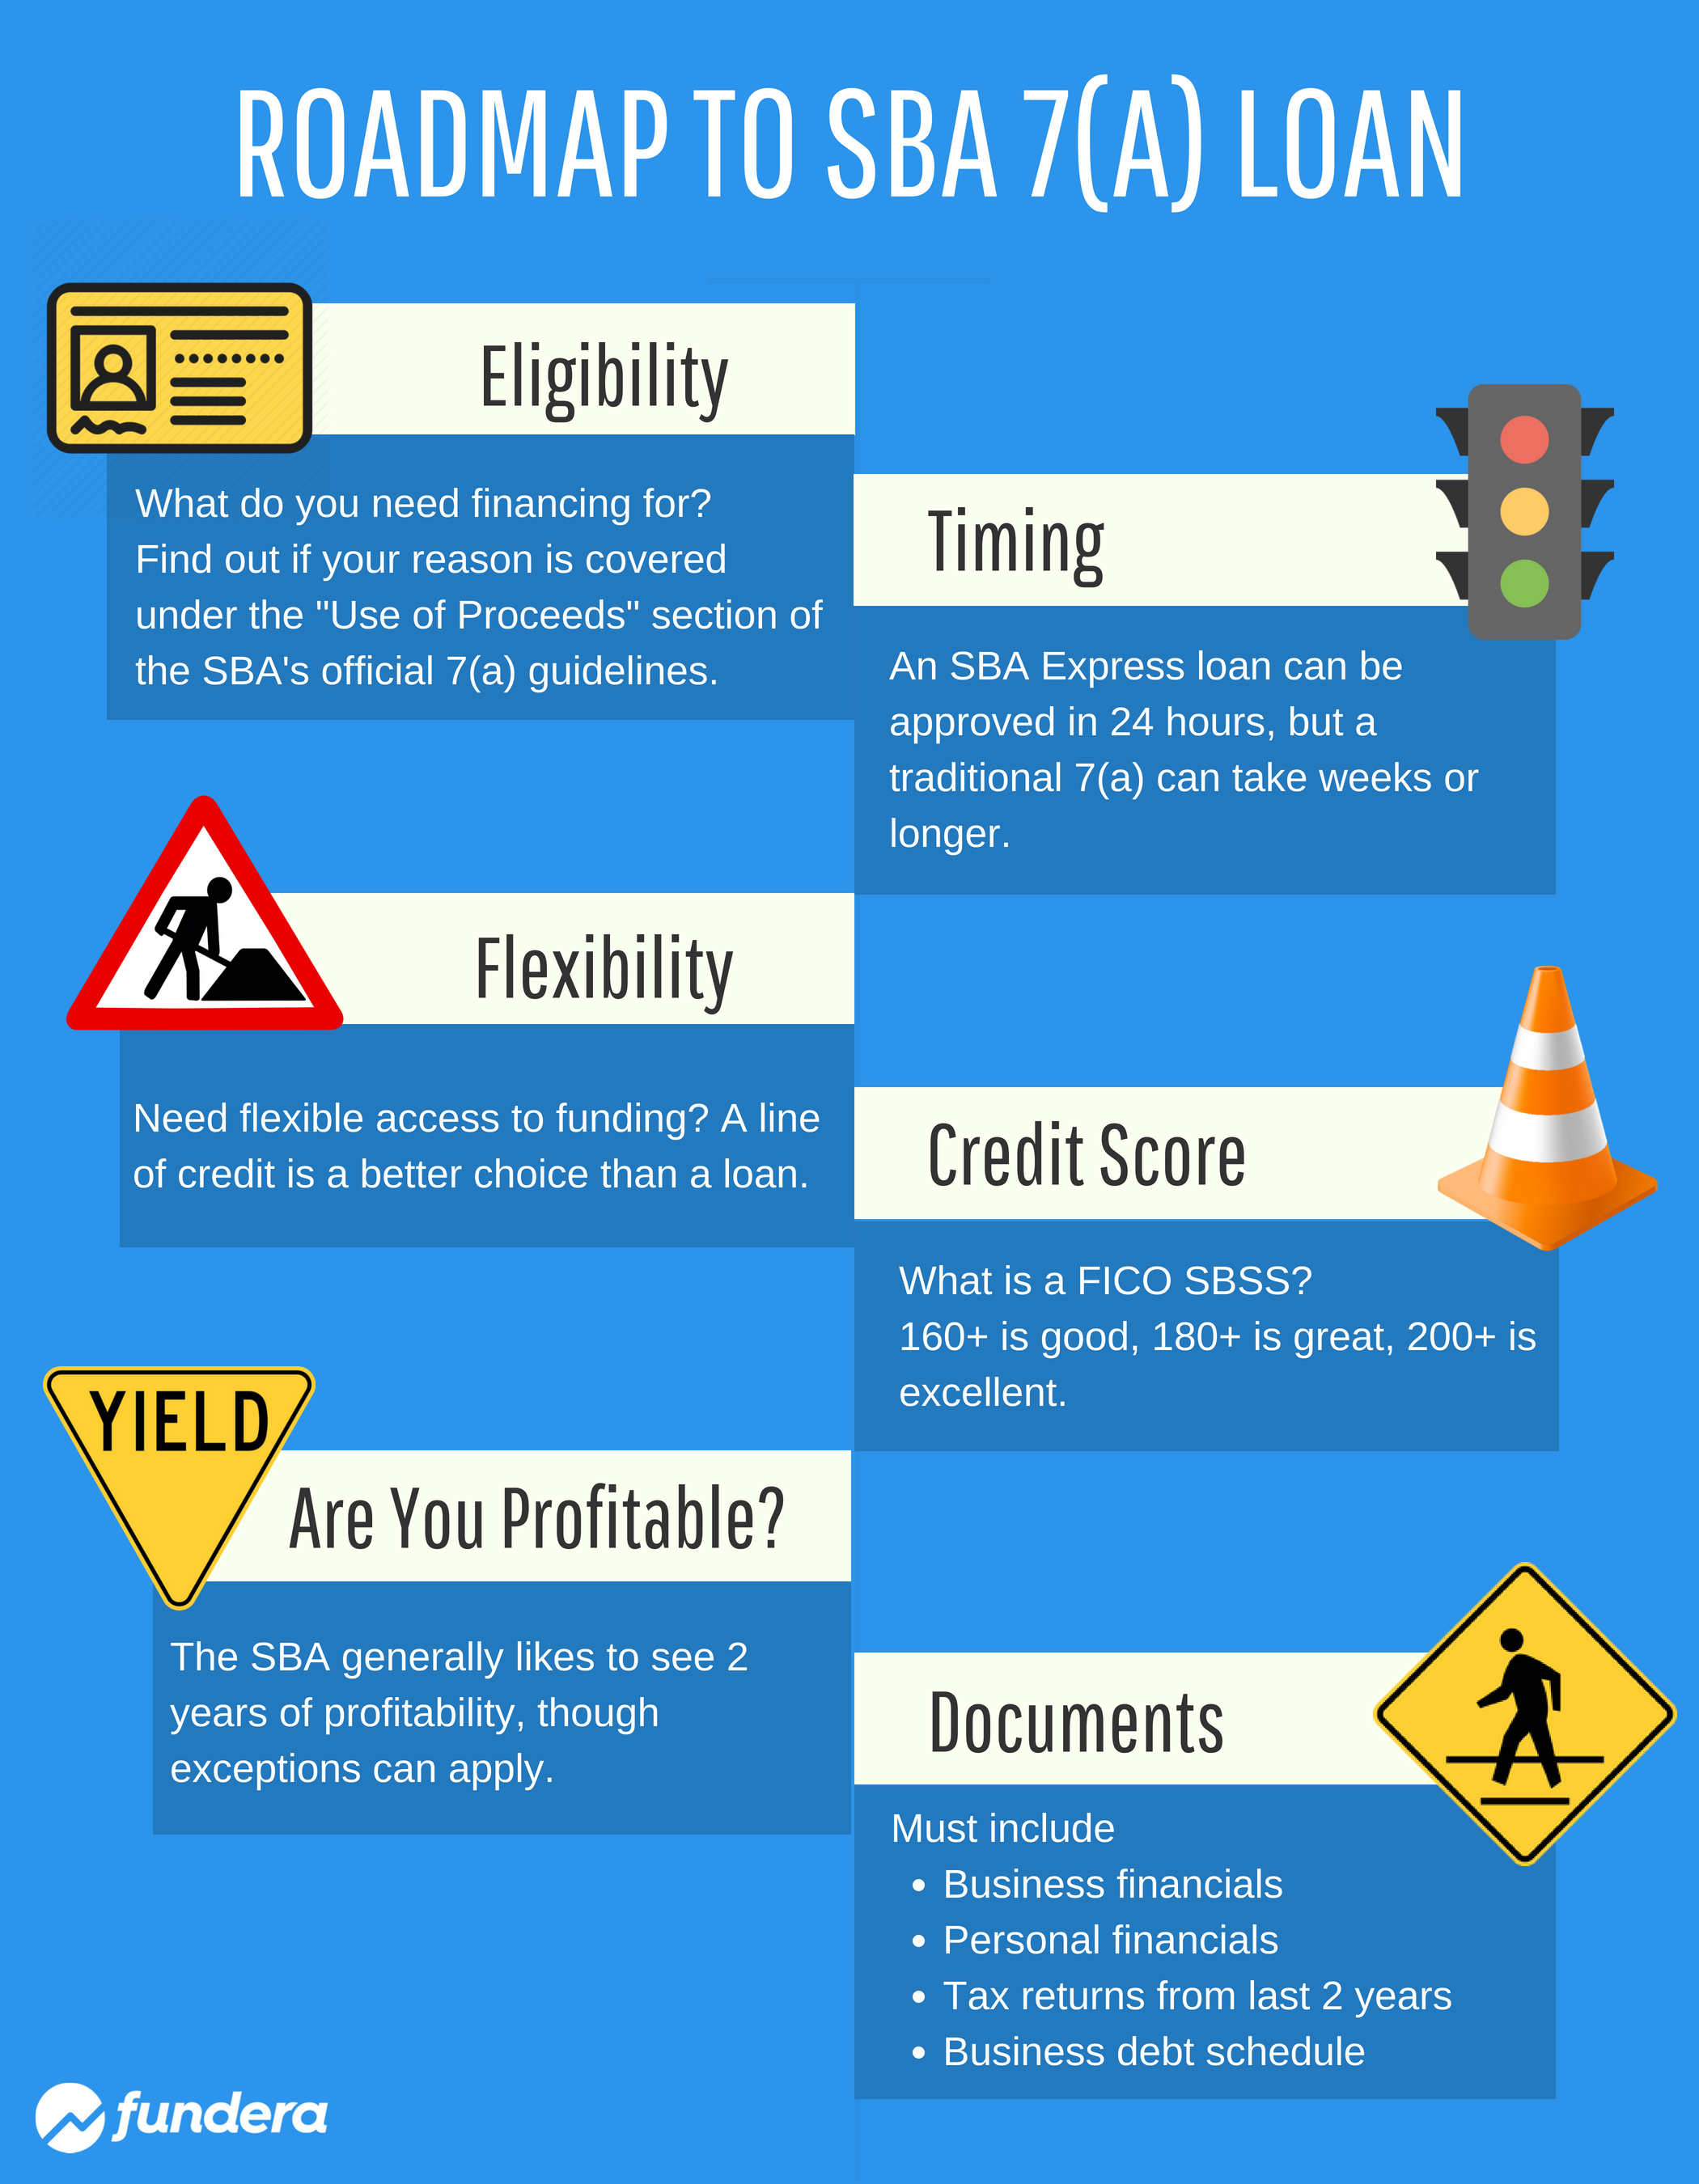 roadmap to an sba 7(a) loan infographic